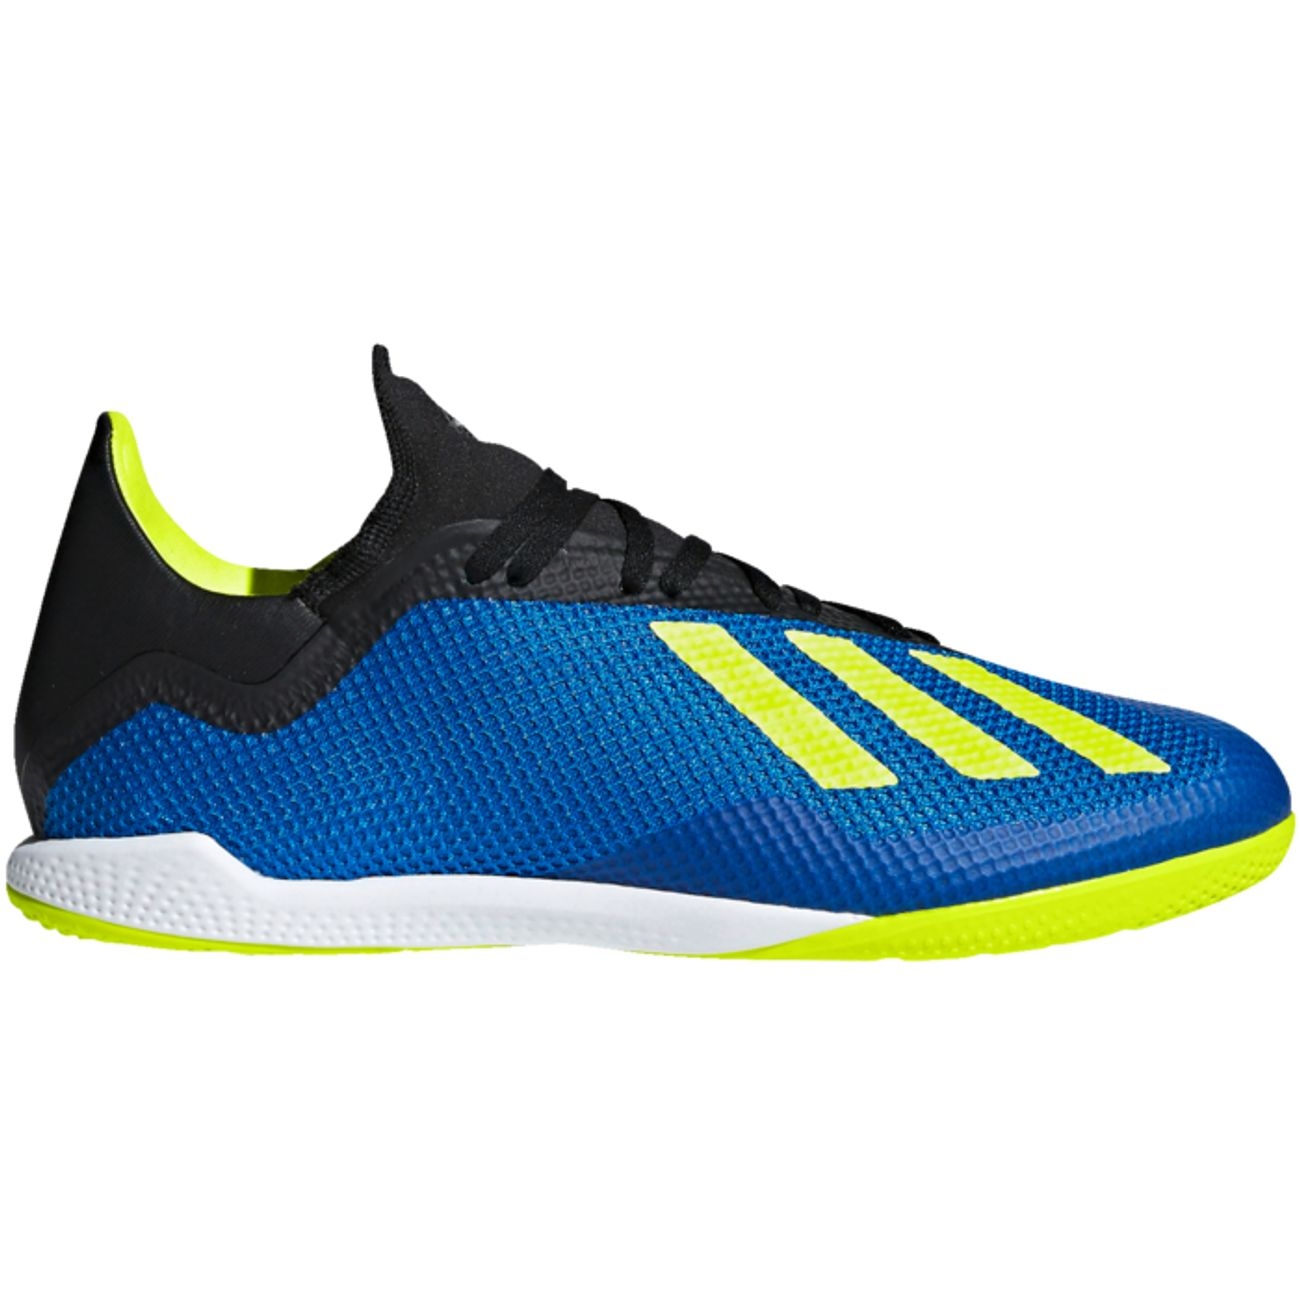 CHAUSSURES BASSES Football homme ADIDAS X TANGO 18.3 IN